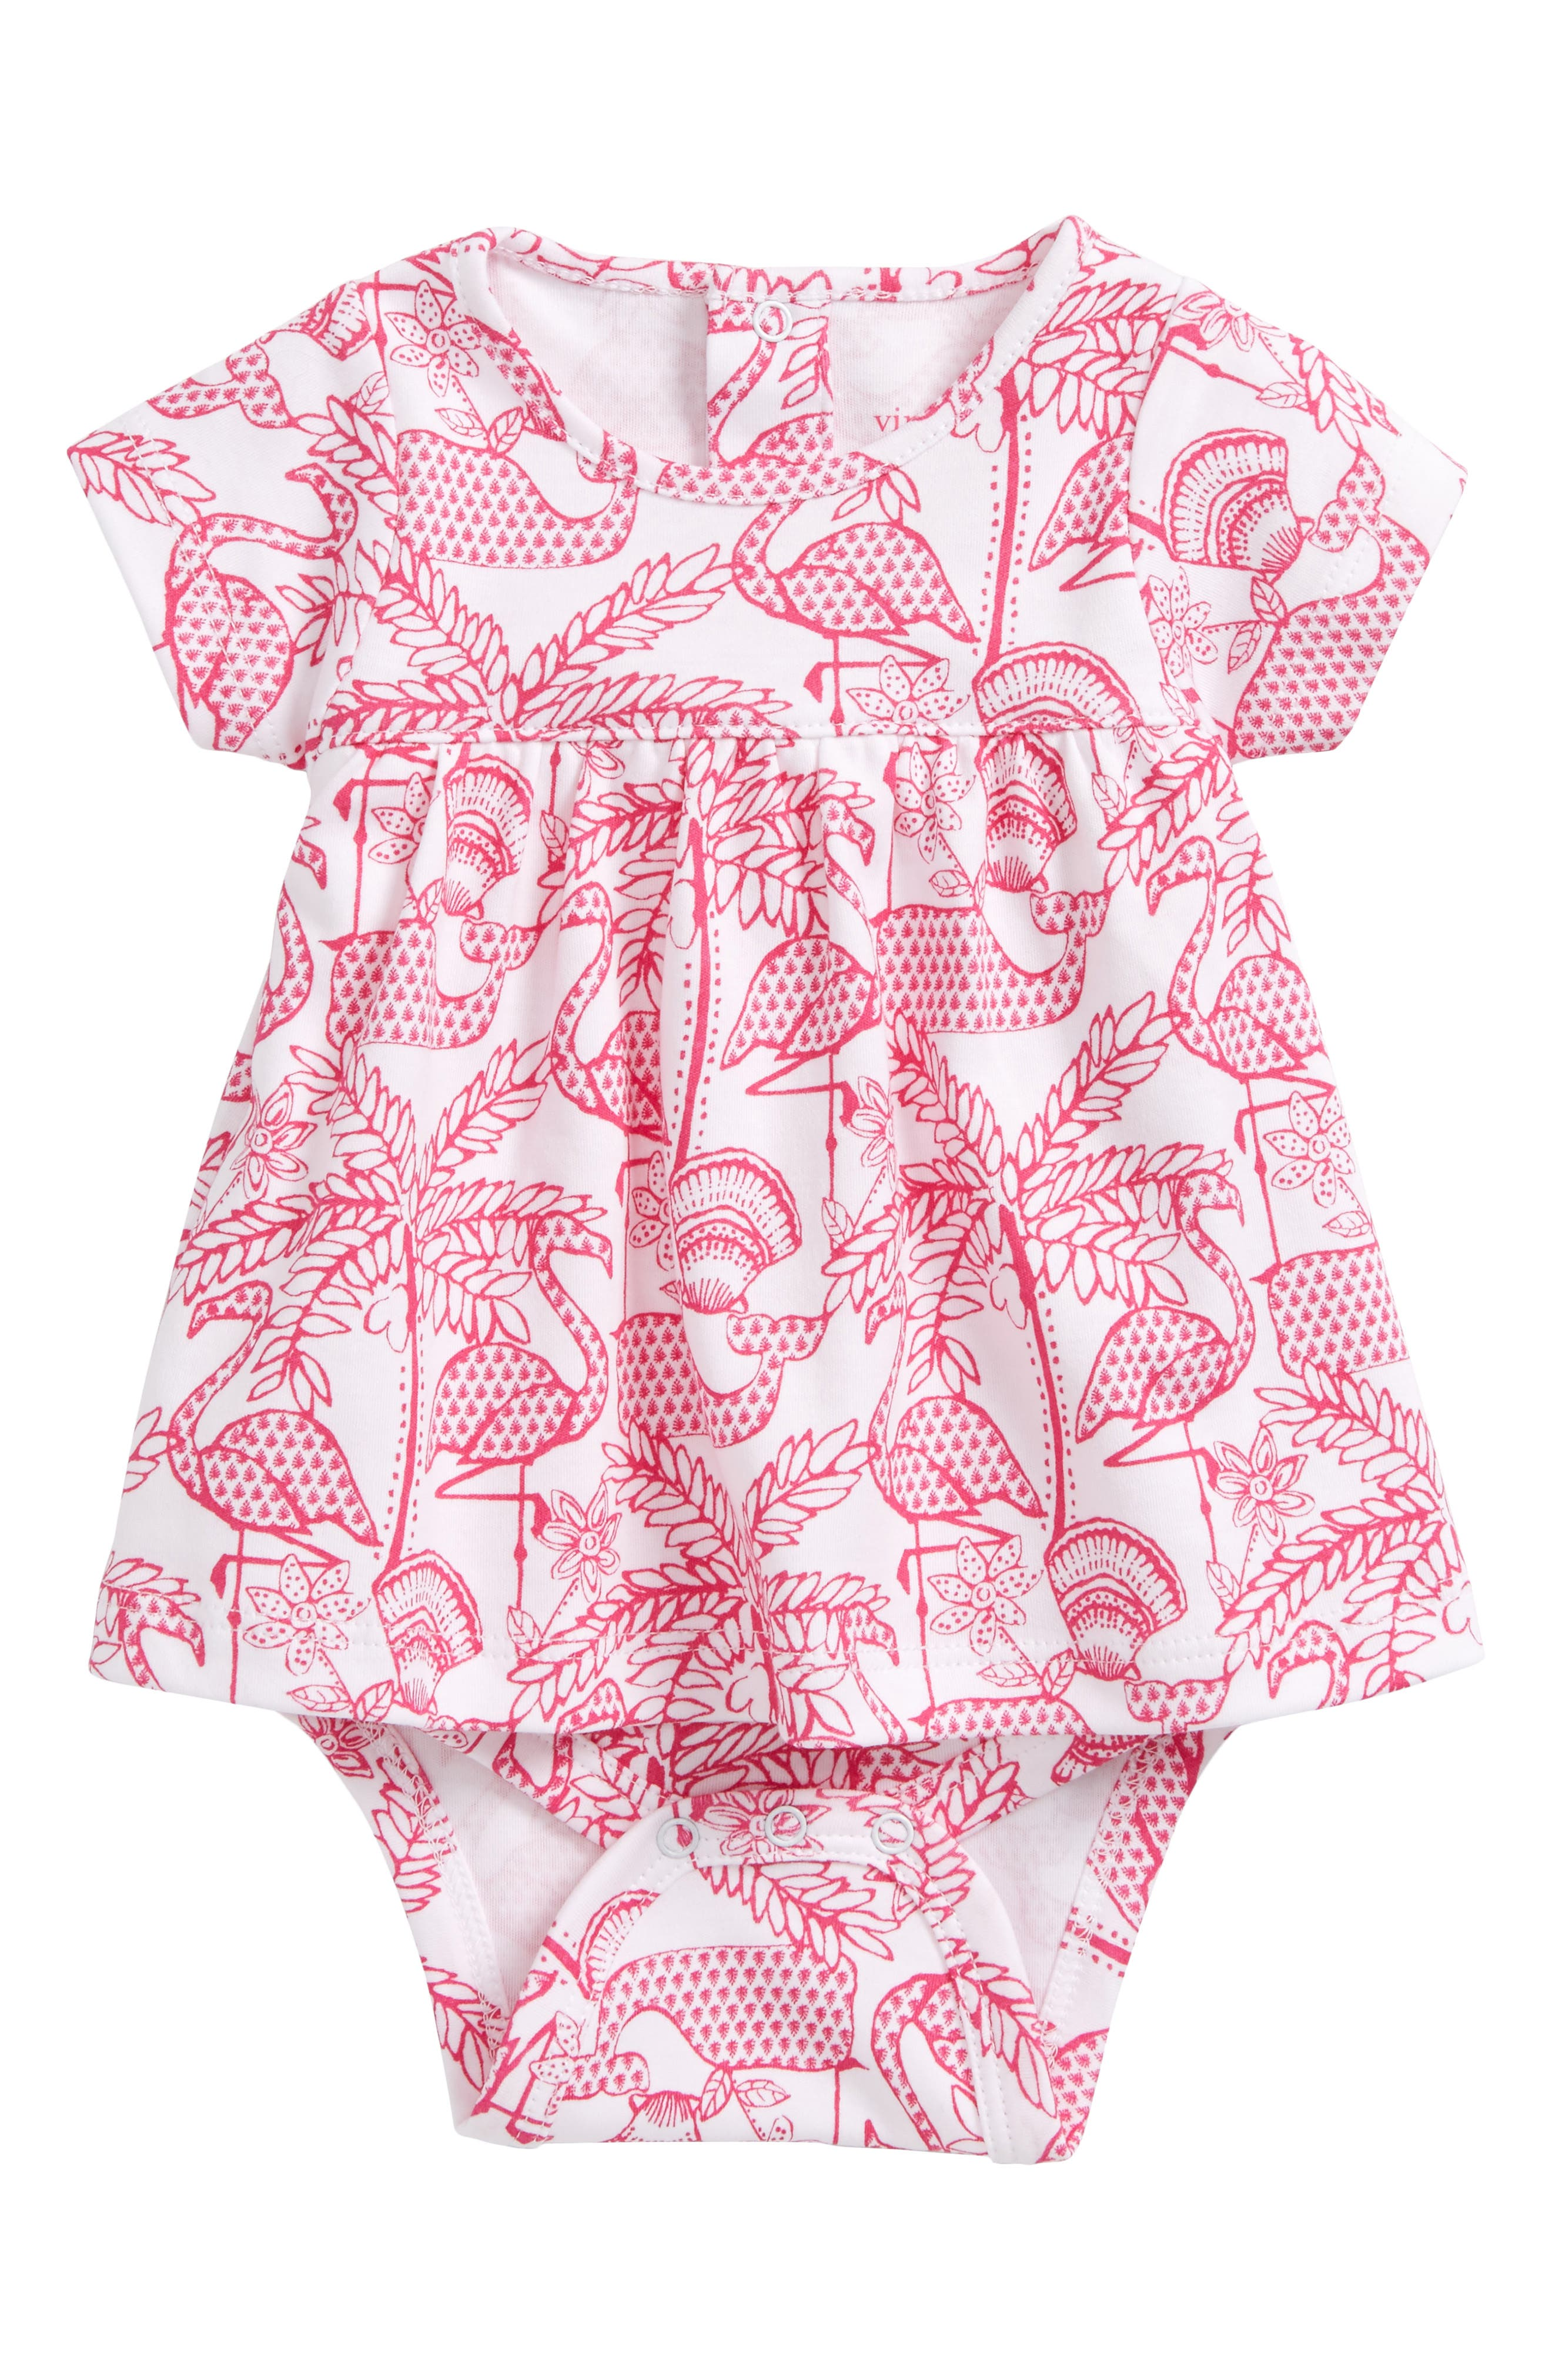 Alternate Image 1 Selected - vineyard vines Flamingo Pima Cotton Skirted Bodysuit (Baby Girls)